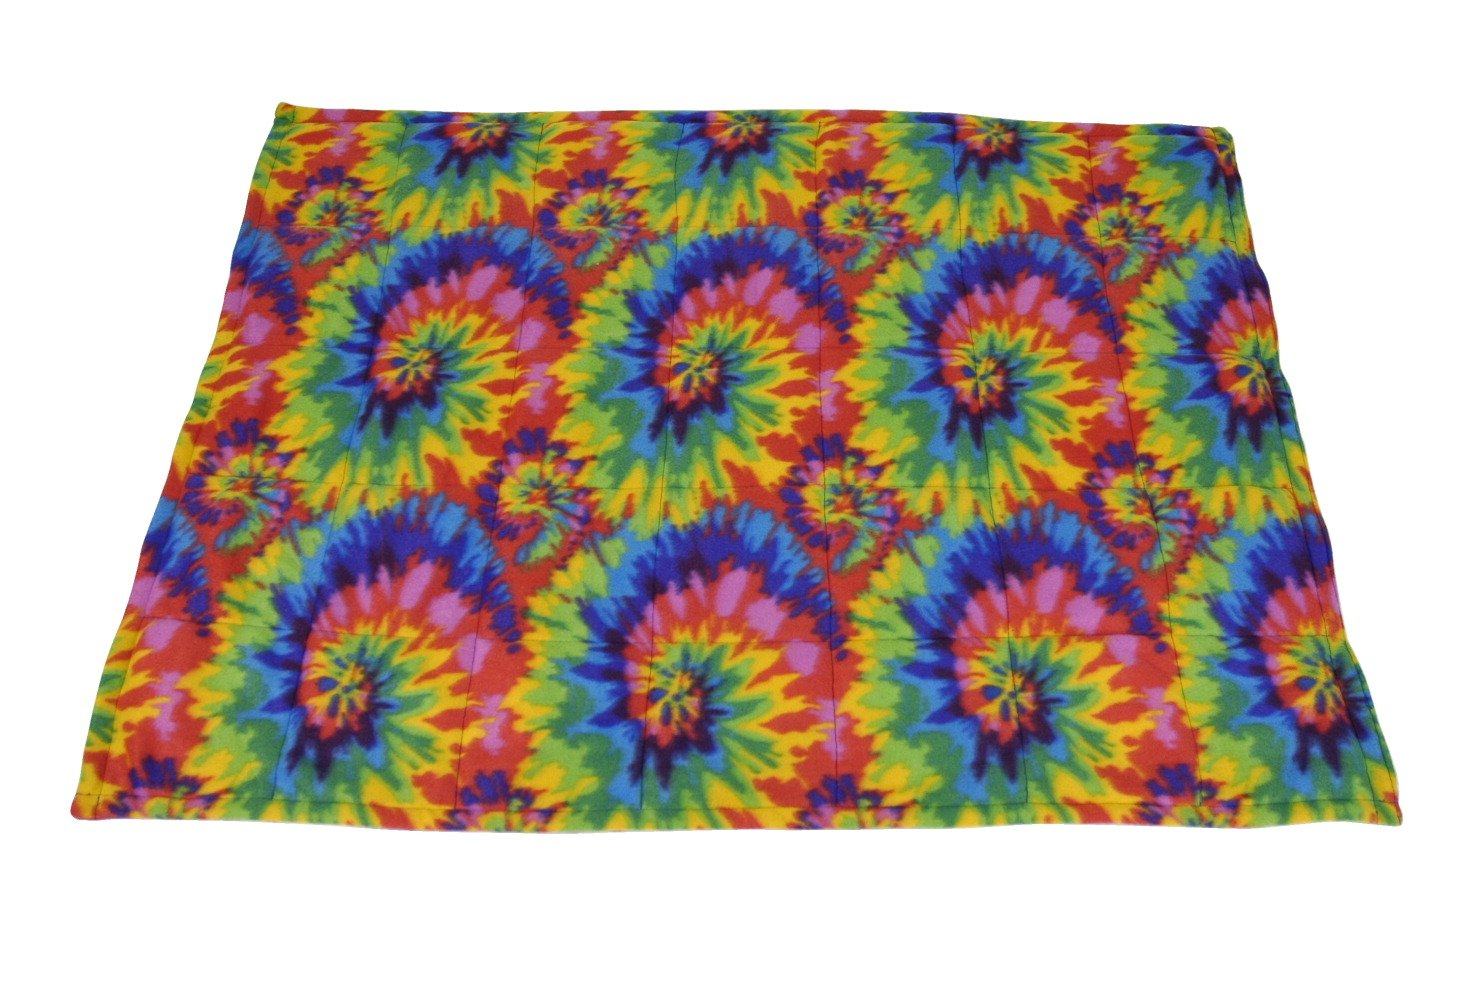 Abilitations Weighted Blanket, Large, Multi Color